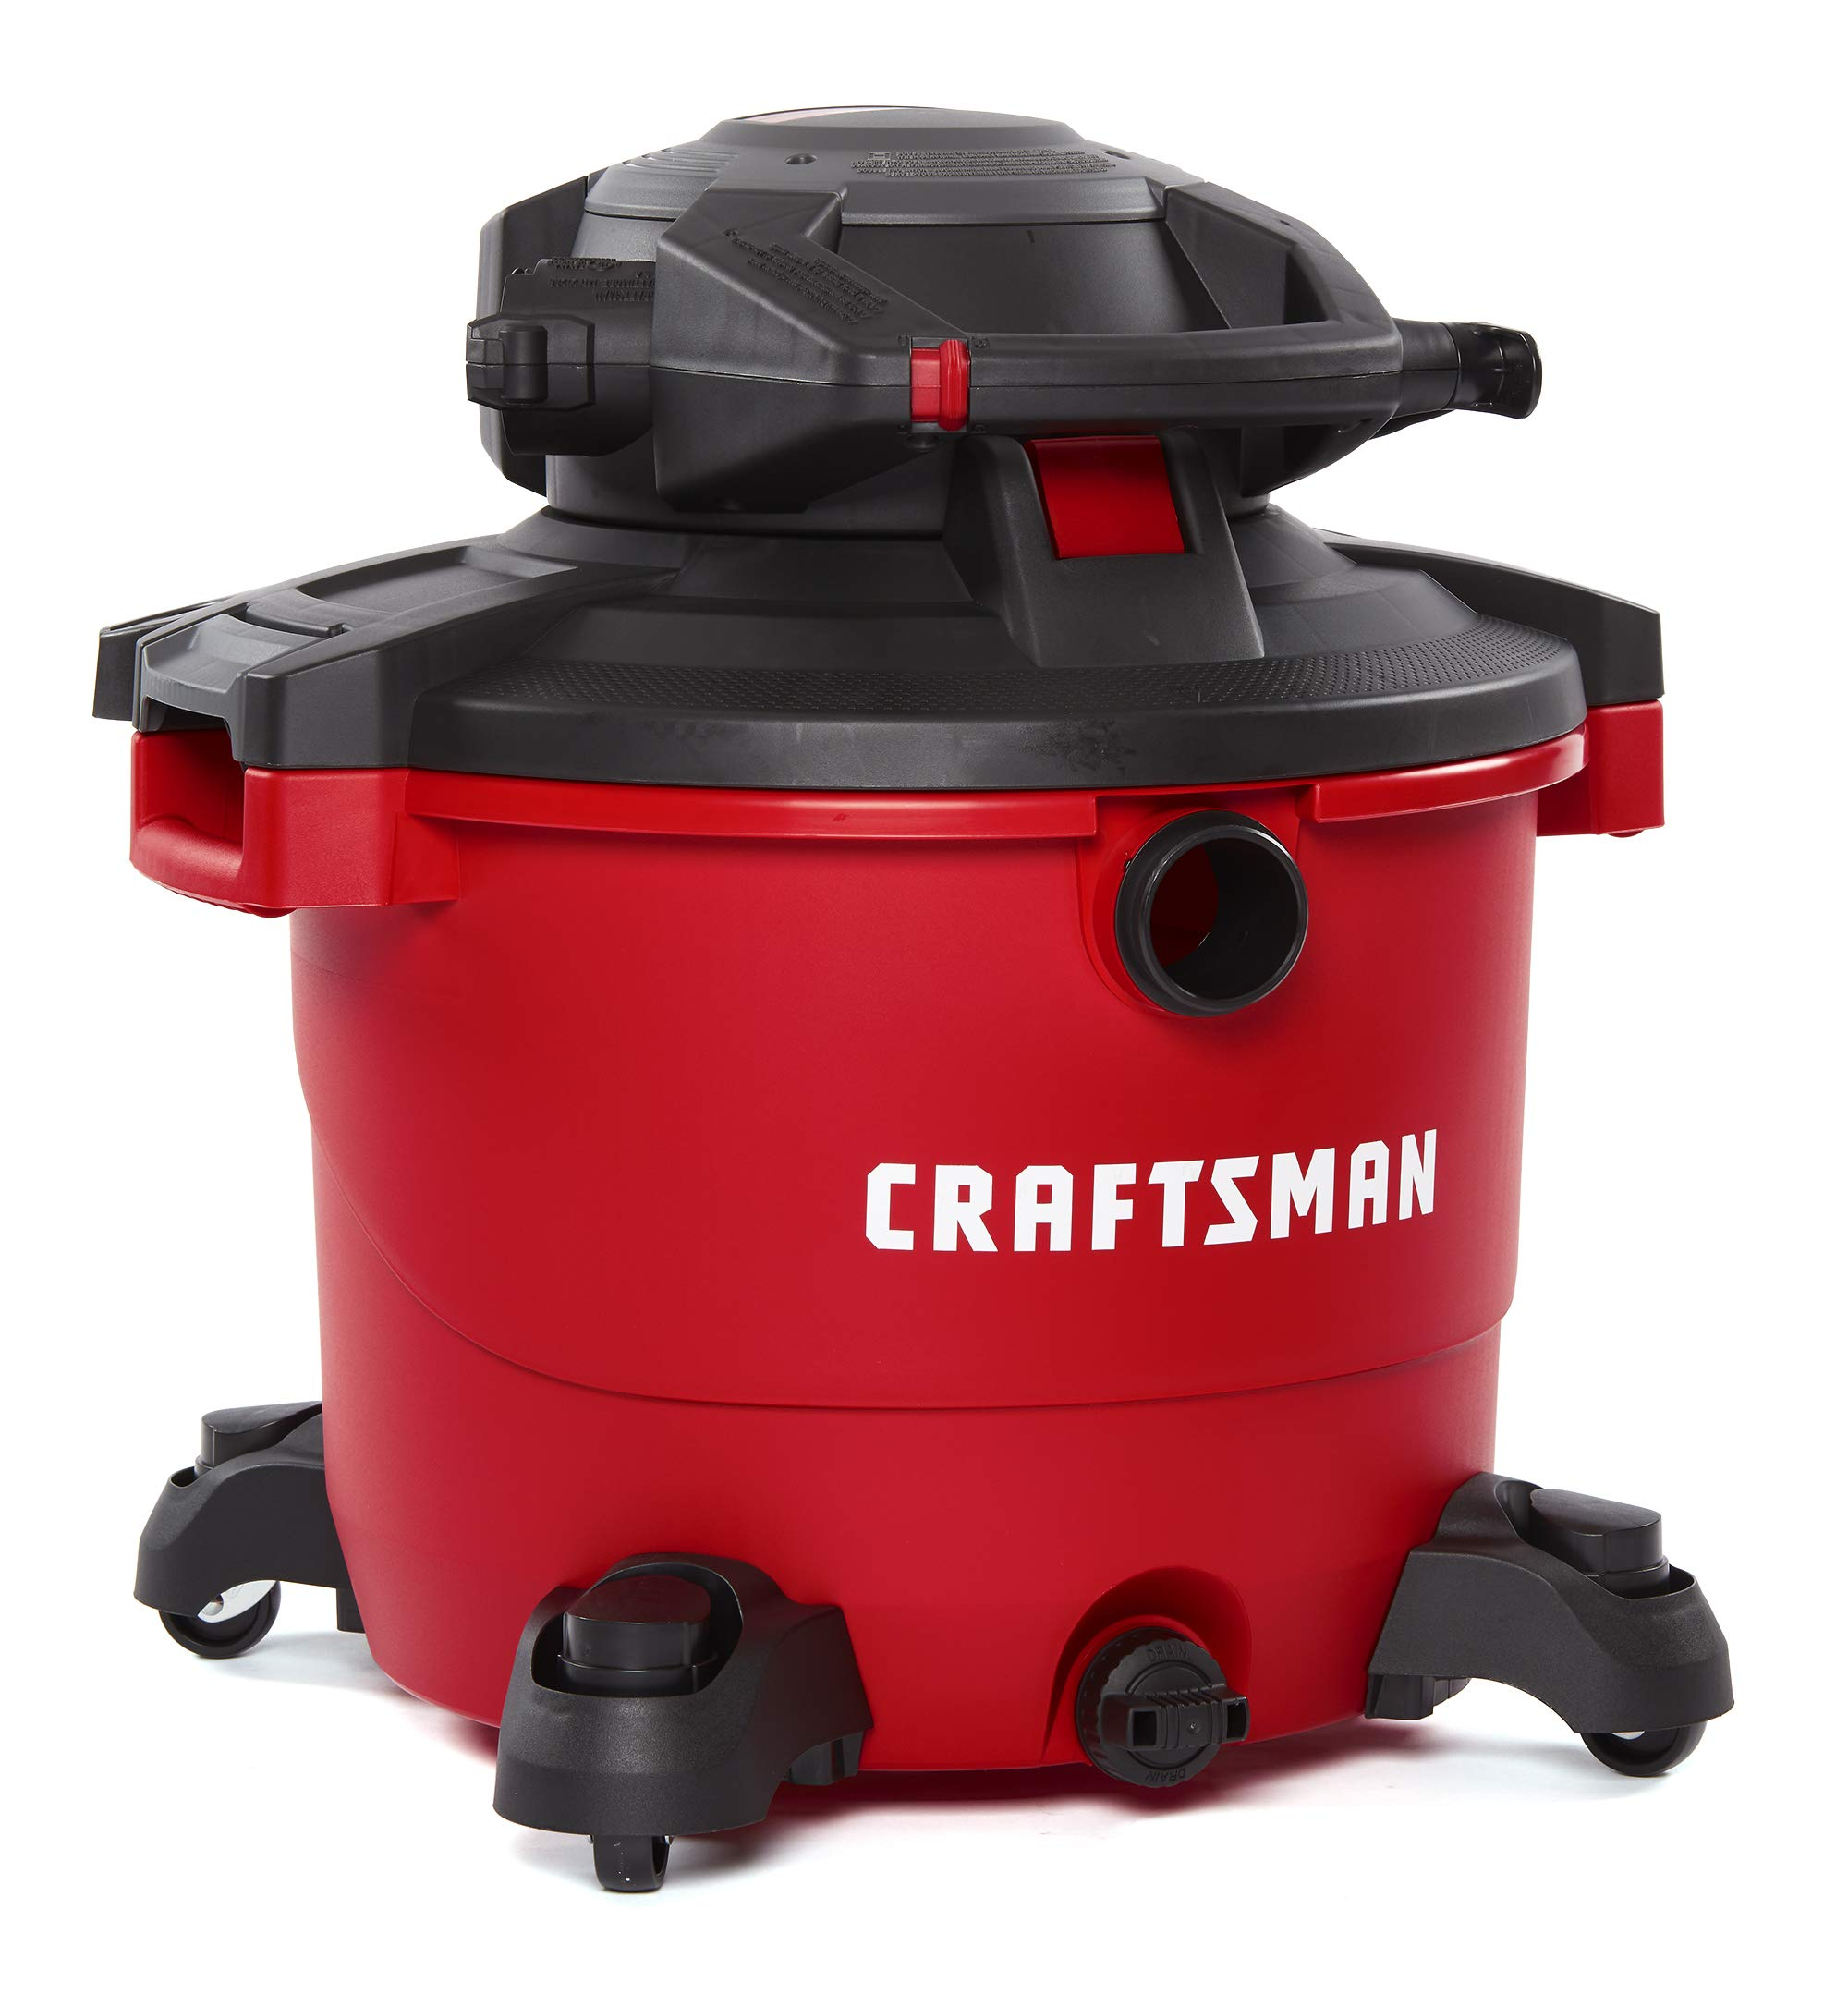 CRAFTSMAN CMXEVBE17607 16 Gallon 6.5 Peak HP Wet/Dry Vac with Detachable Leaf Blower, Heavy-Duty Shop Vacuum with Attachments by Craftsman